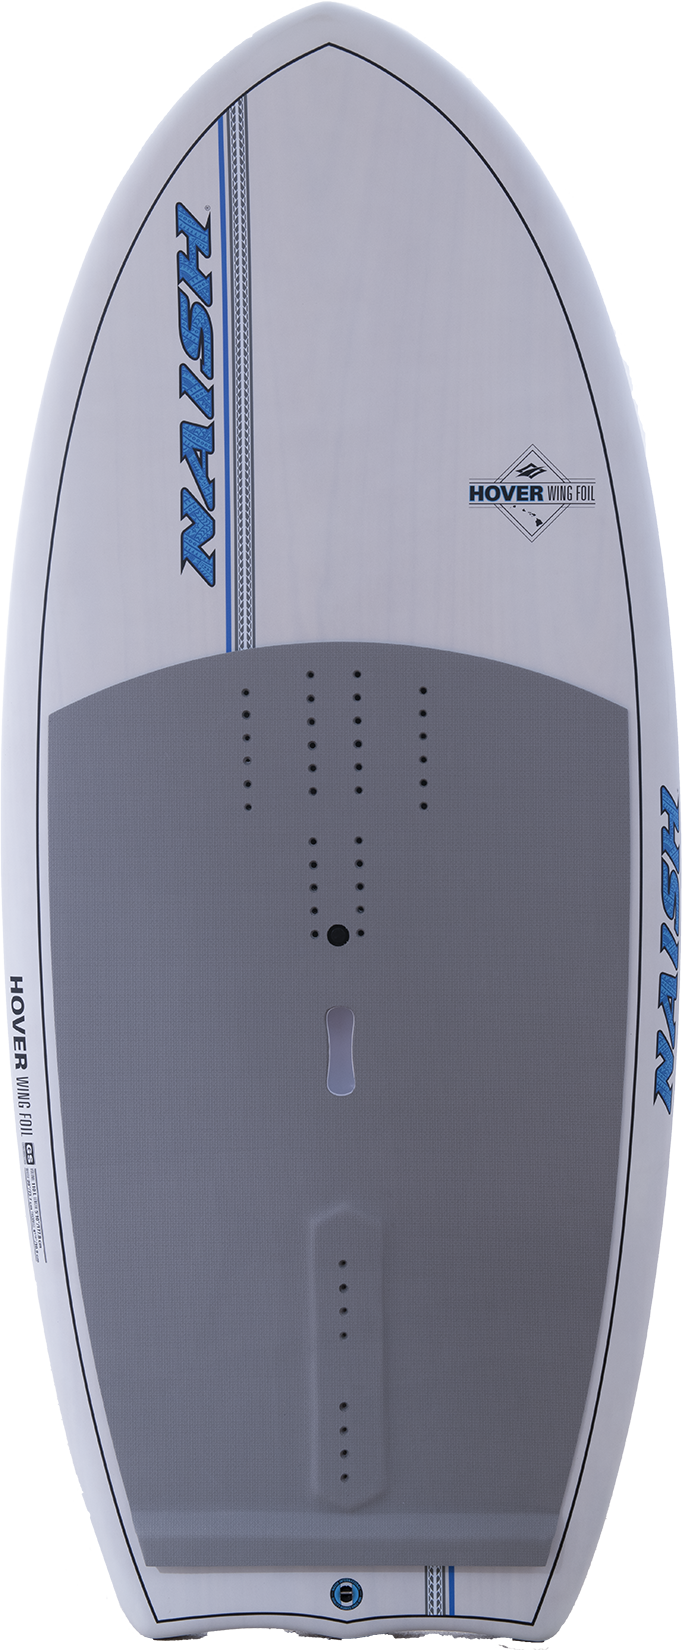 Naish S26 Wing Foil Hover GS